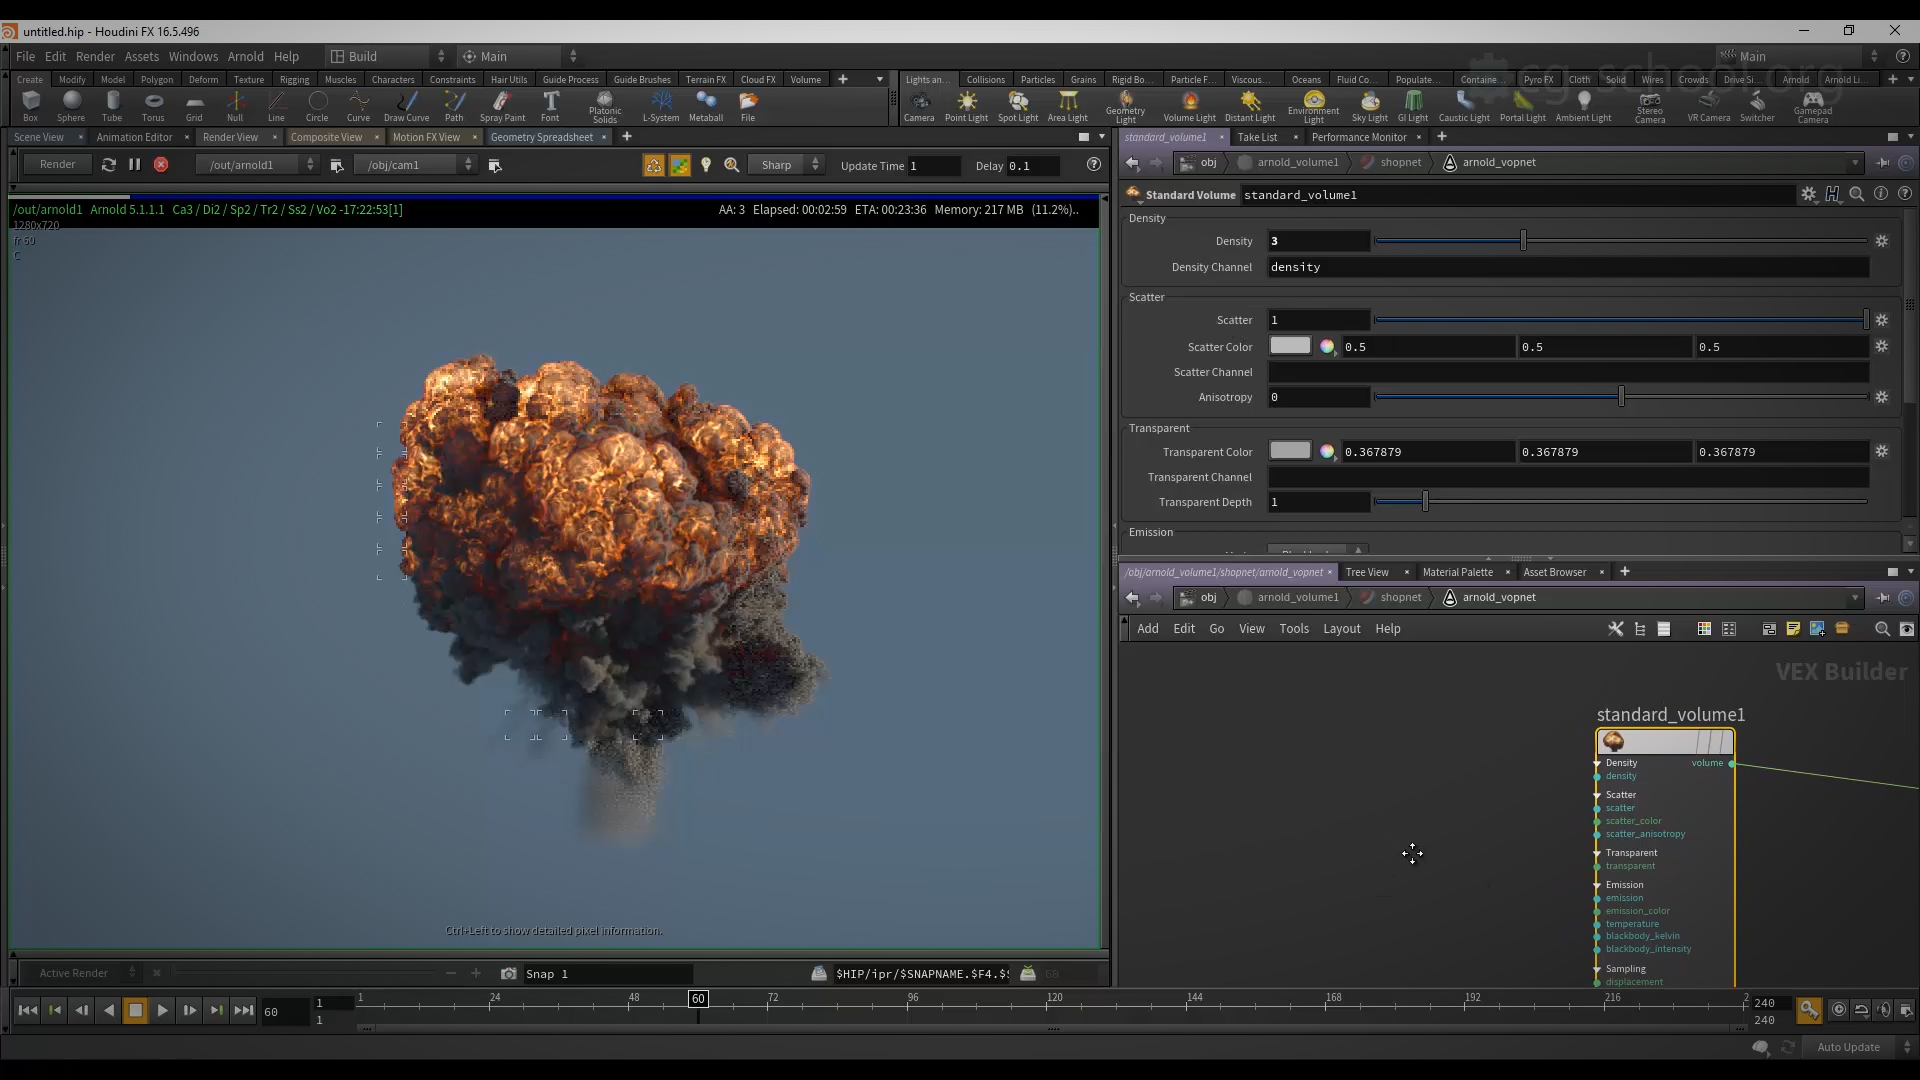 Explosion, using particles in Houdini